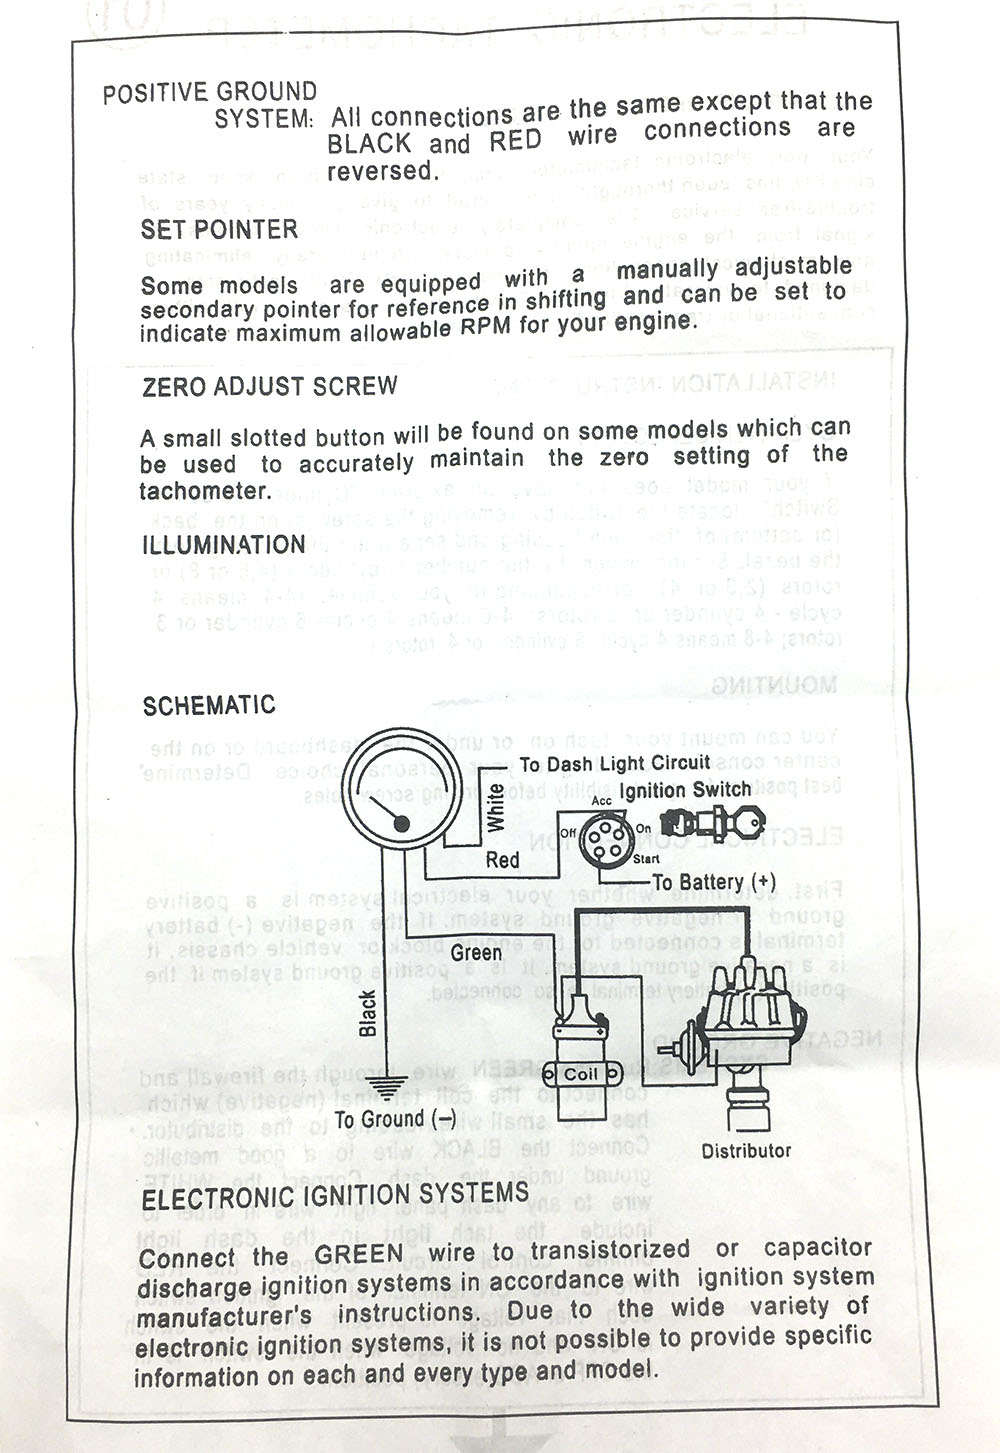 Stewart Warner Fuel Gauge Wiring Diagram Trusted Diagrams Dragon Tach U2022 531 Tachometer